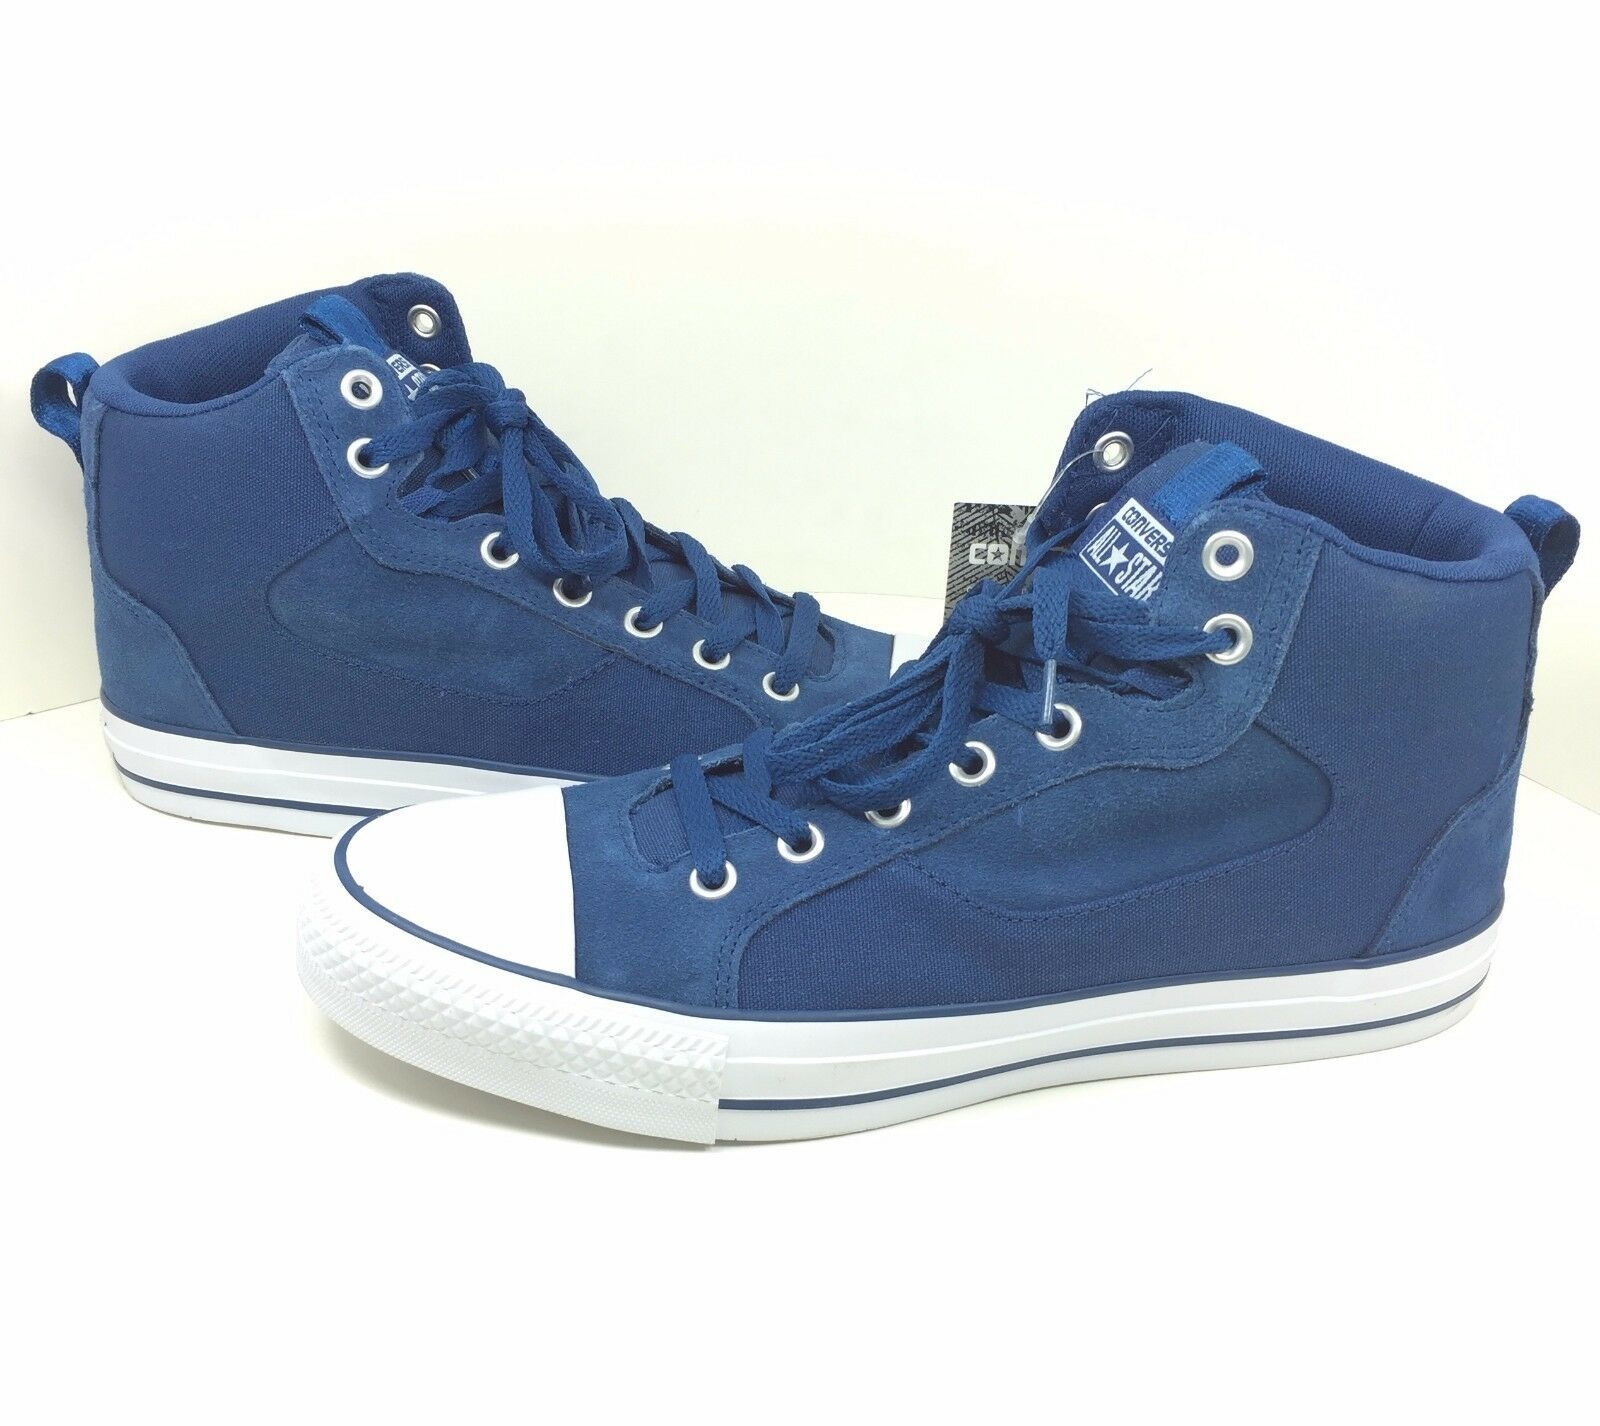 New Converse Chuck Taylor Asylum Mid Size 11 Men's All Star Blue Canvas 147110C